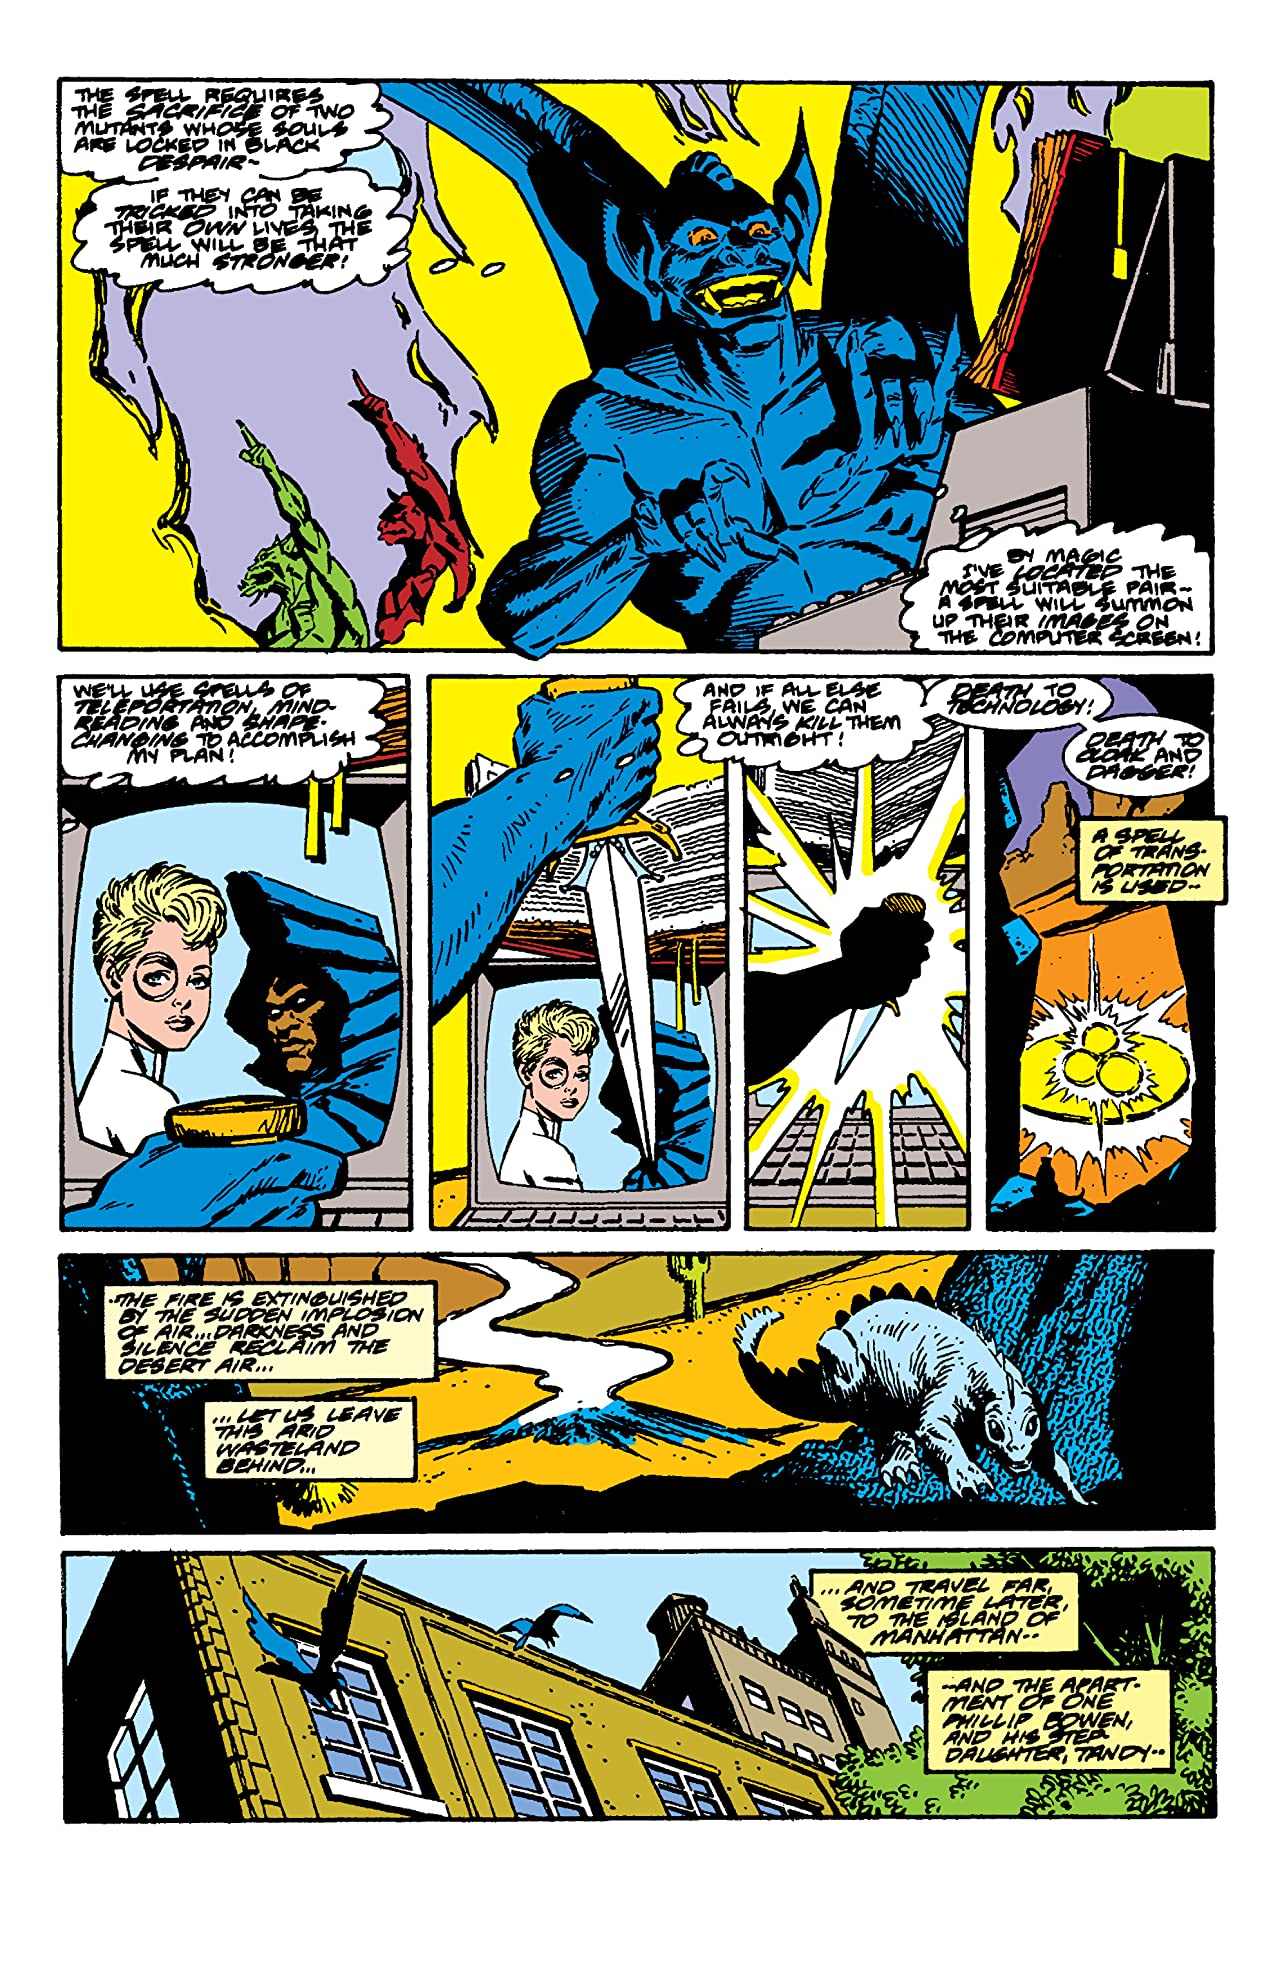 The Mutant Misadventures of Cloak and Dagger (1988-1991) #4